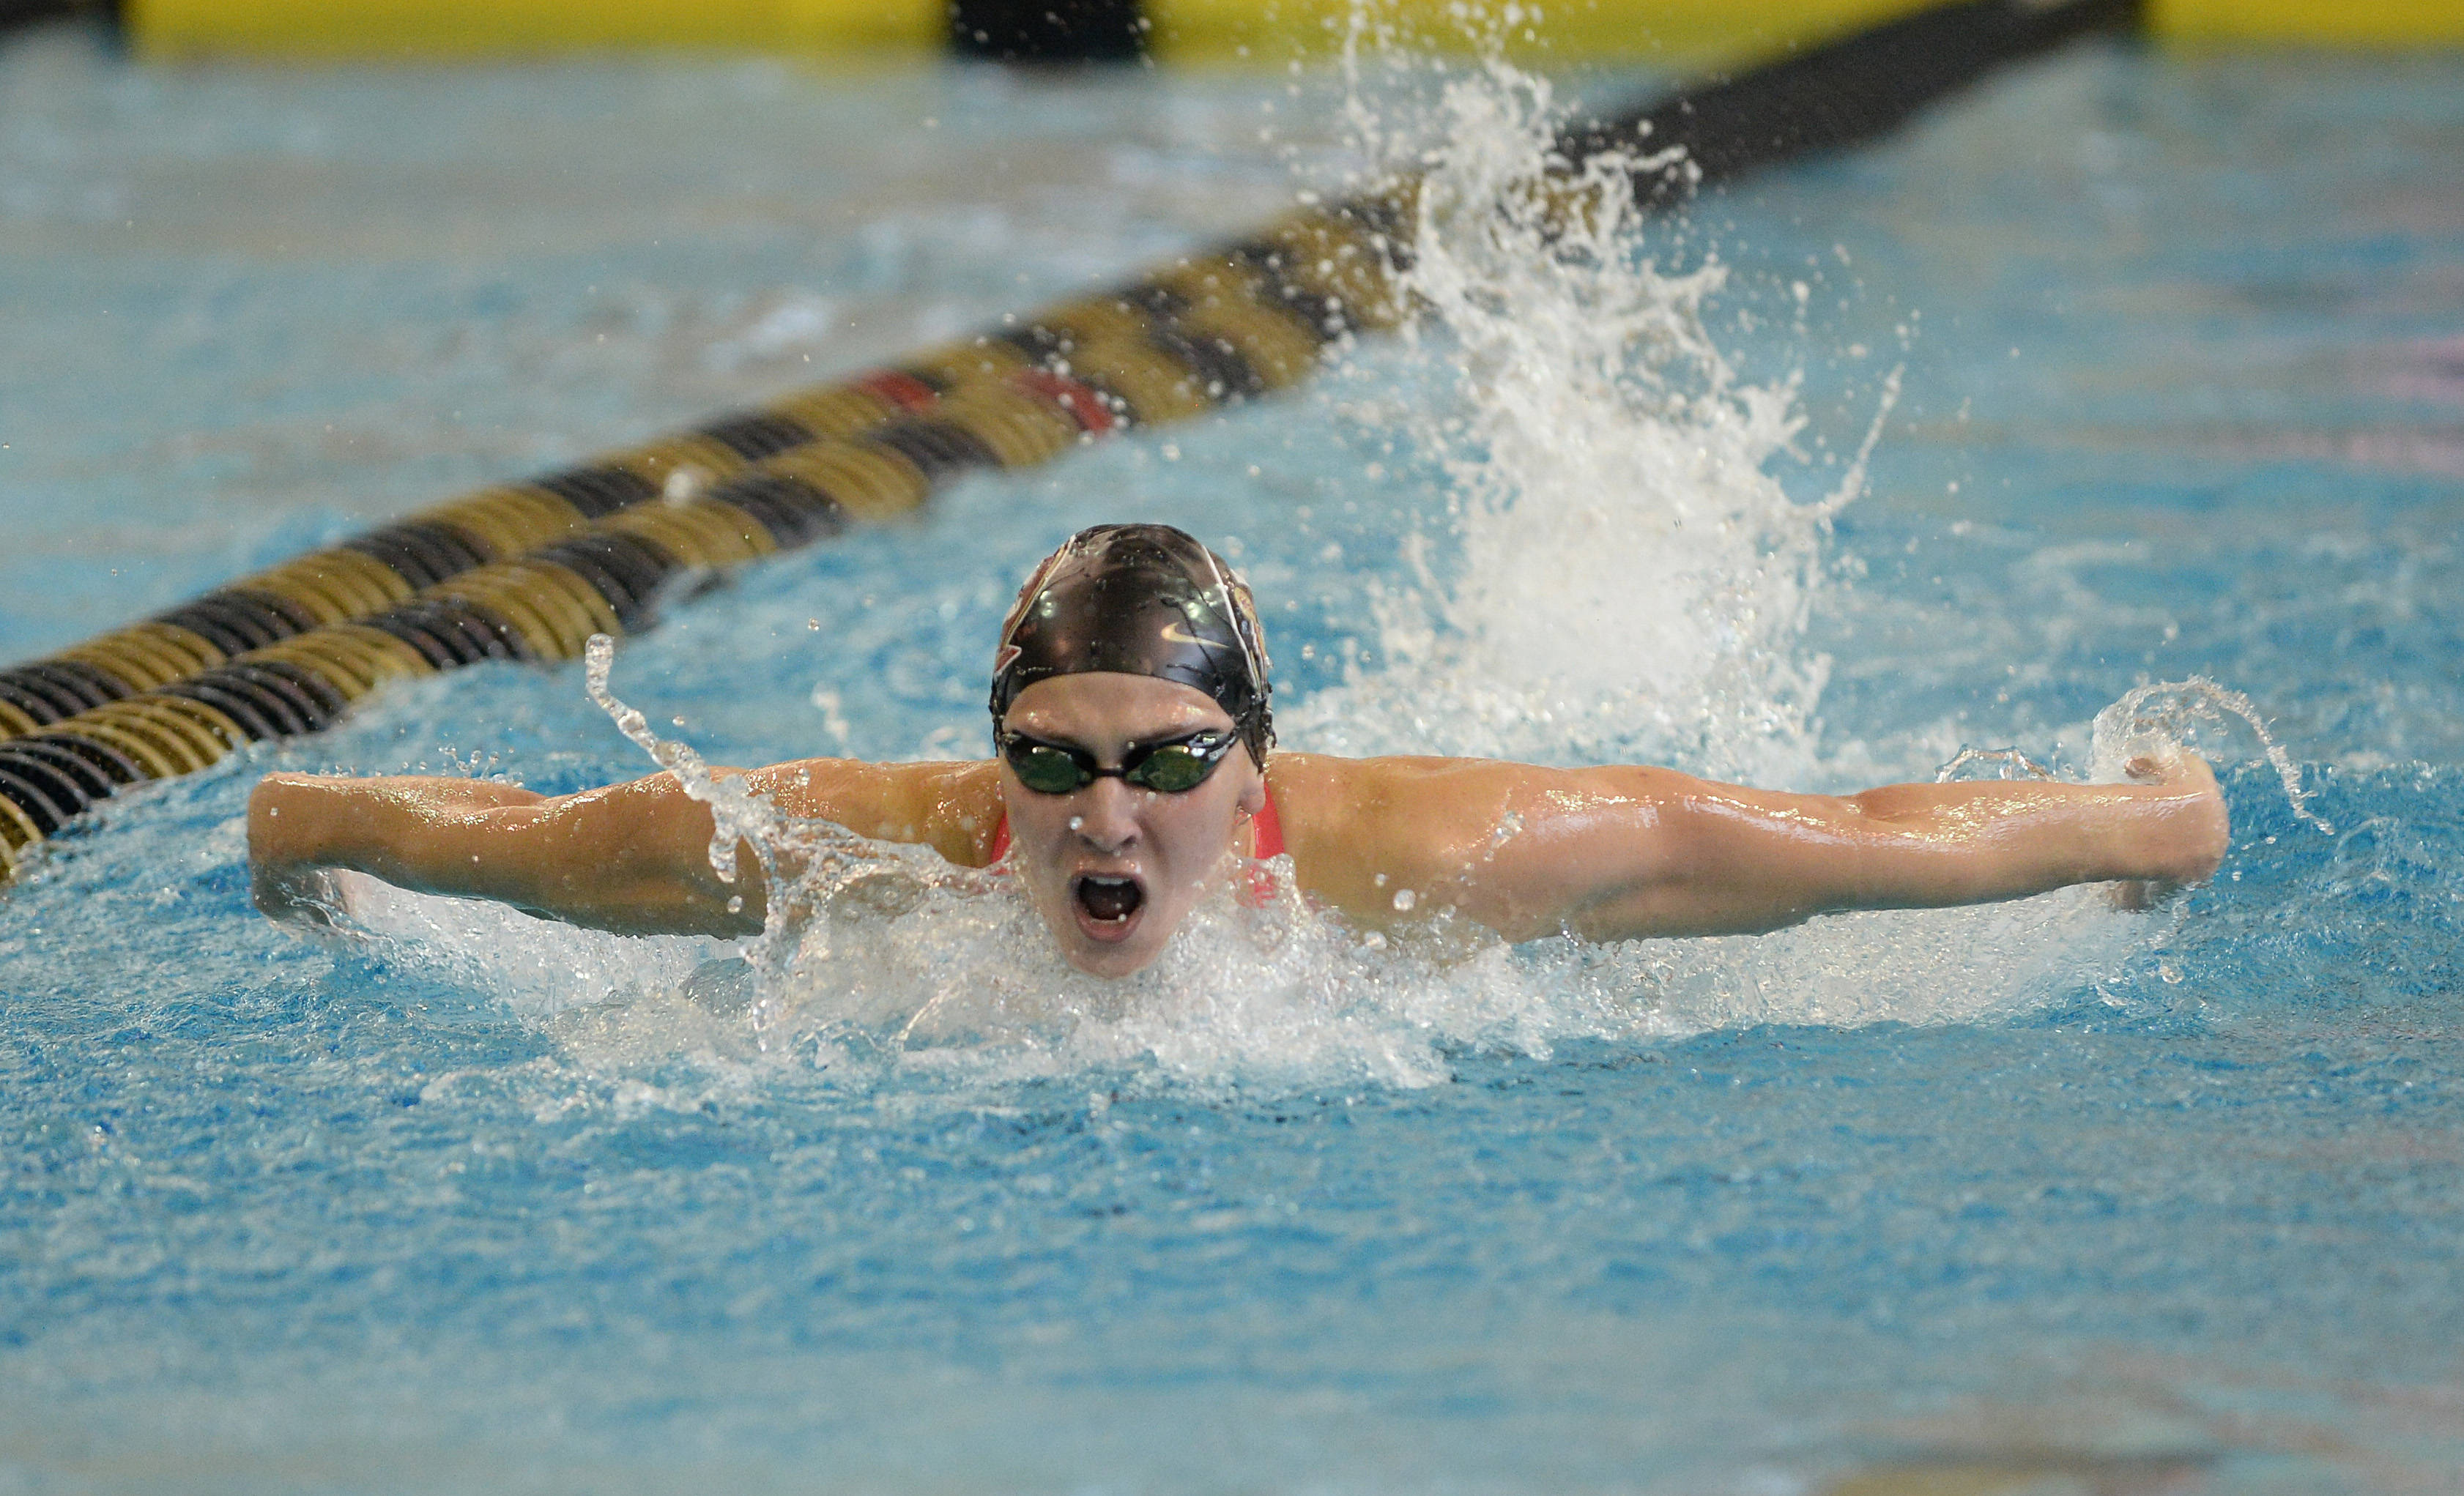 Chelsea Britt swims the 100 fly - Mitch White